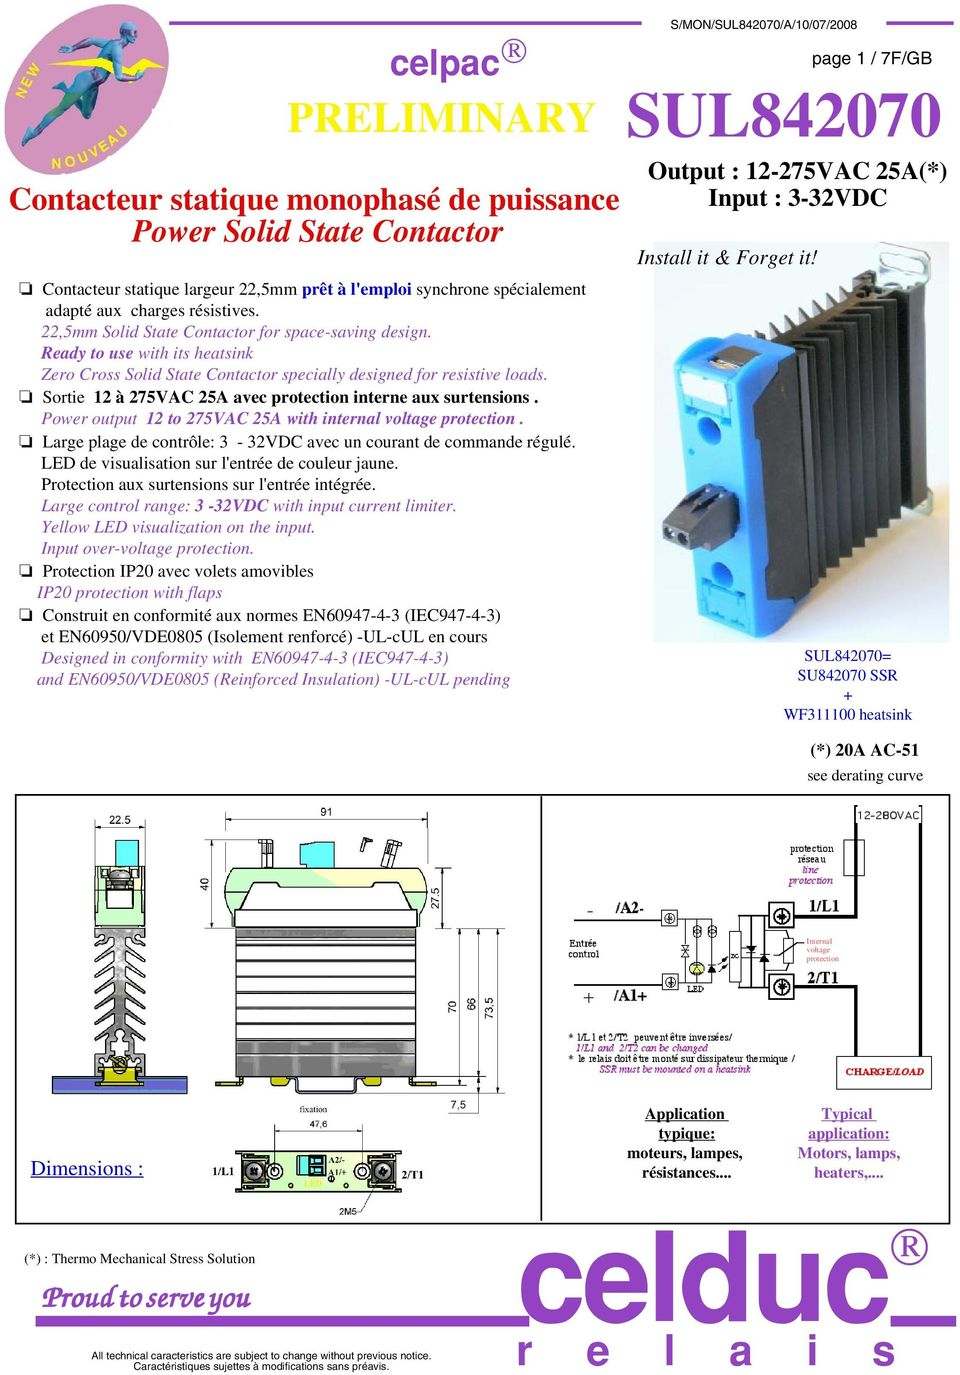 Sortie à 75VAC 5A avec protection interne aux surtensions. Power output to 75VAC 5A with internal voltage protection. Large plage de contrôle: 3-3VDC avec un courant de commande régulé.